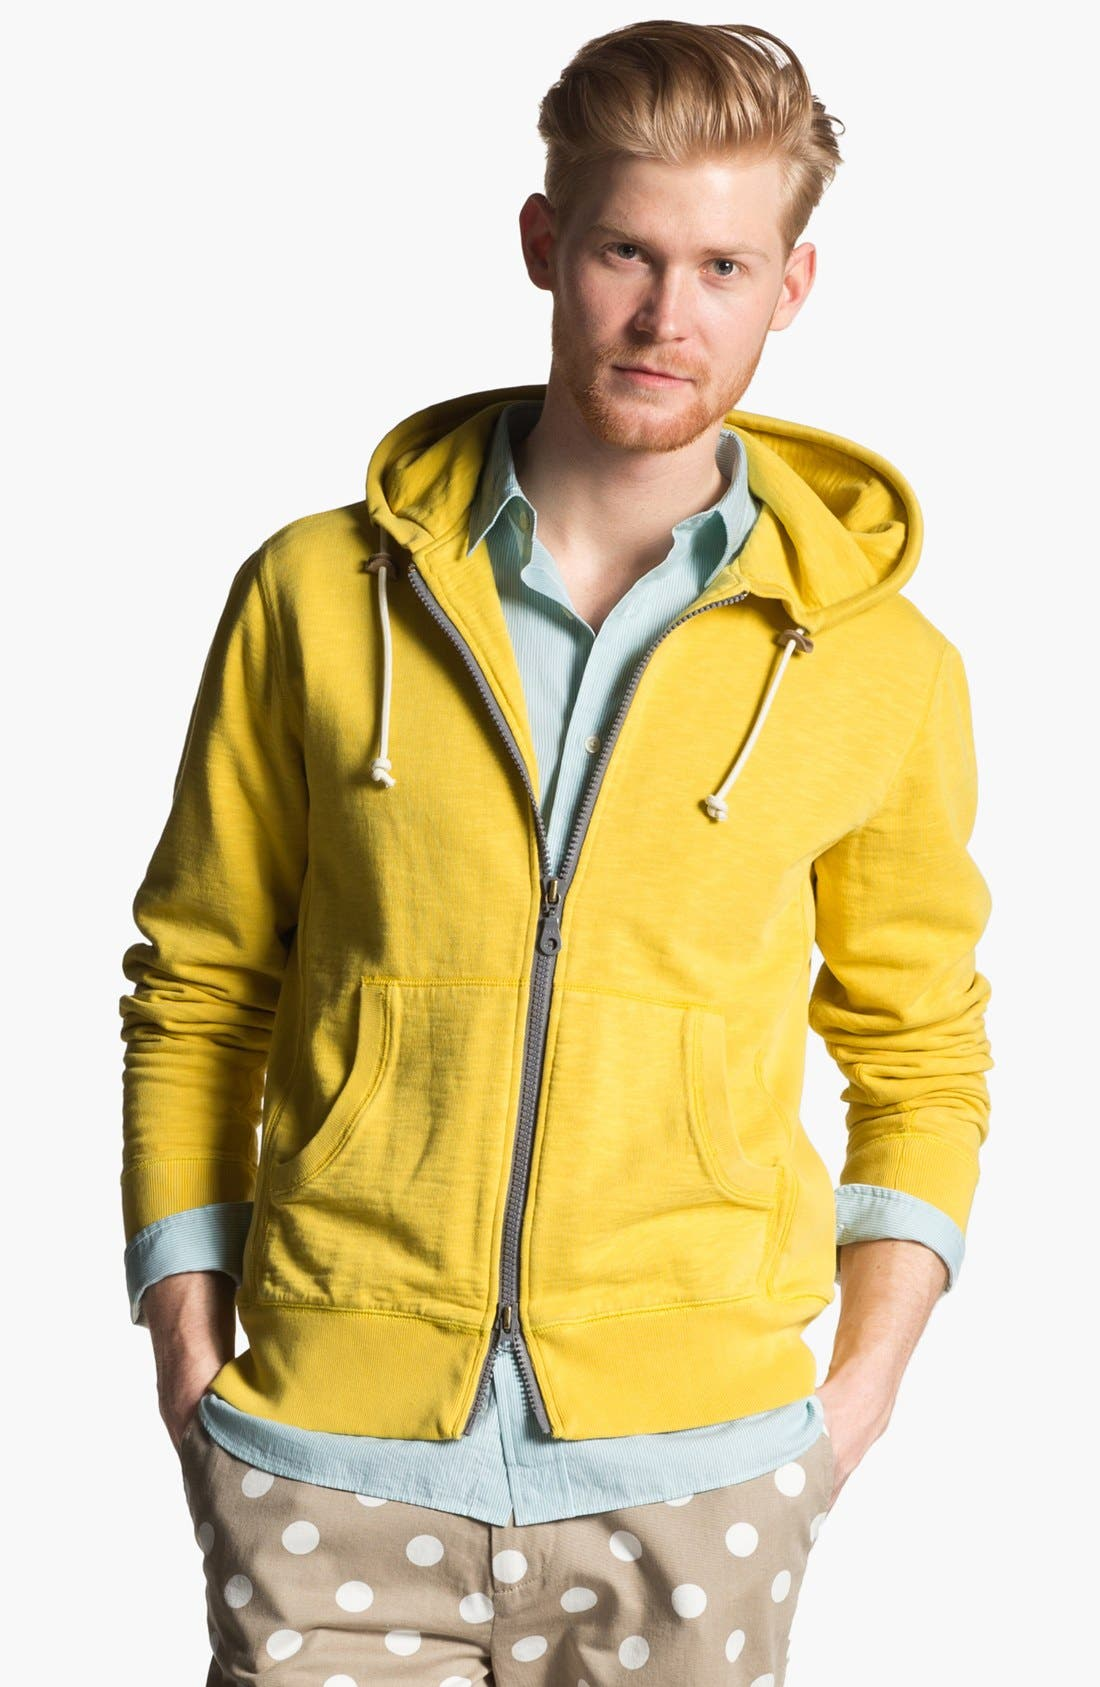 Alternate Image 1 Selected - Jack Spade 'Cliff' Zip Hoodie